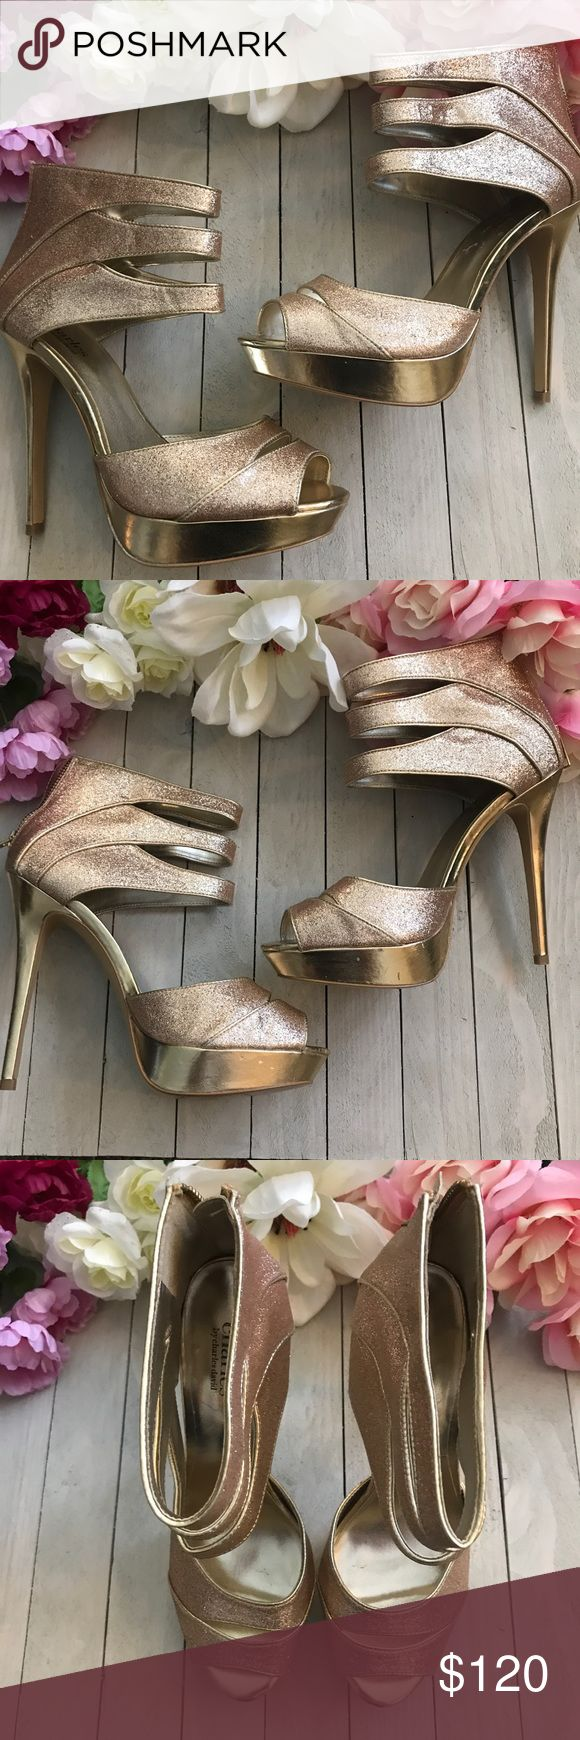 🚨FINAL PRICE DROP🚨Charles David Heels 🚨FINAL PRICE DROP 🚨Charles by Charles David Rose Glitter and Gold Platform Heels Size 9. Worn once. Few little dents in Platform but hardly noticeable until you look up close. Fantastic condition and beautiful Heels 😍😍 Glitter looks a bit rose and Platform is gold Charles David Shoes Platforms